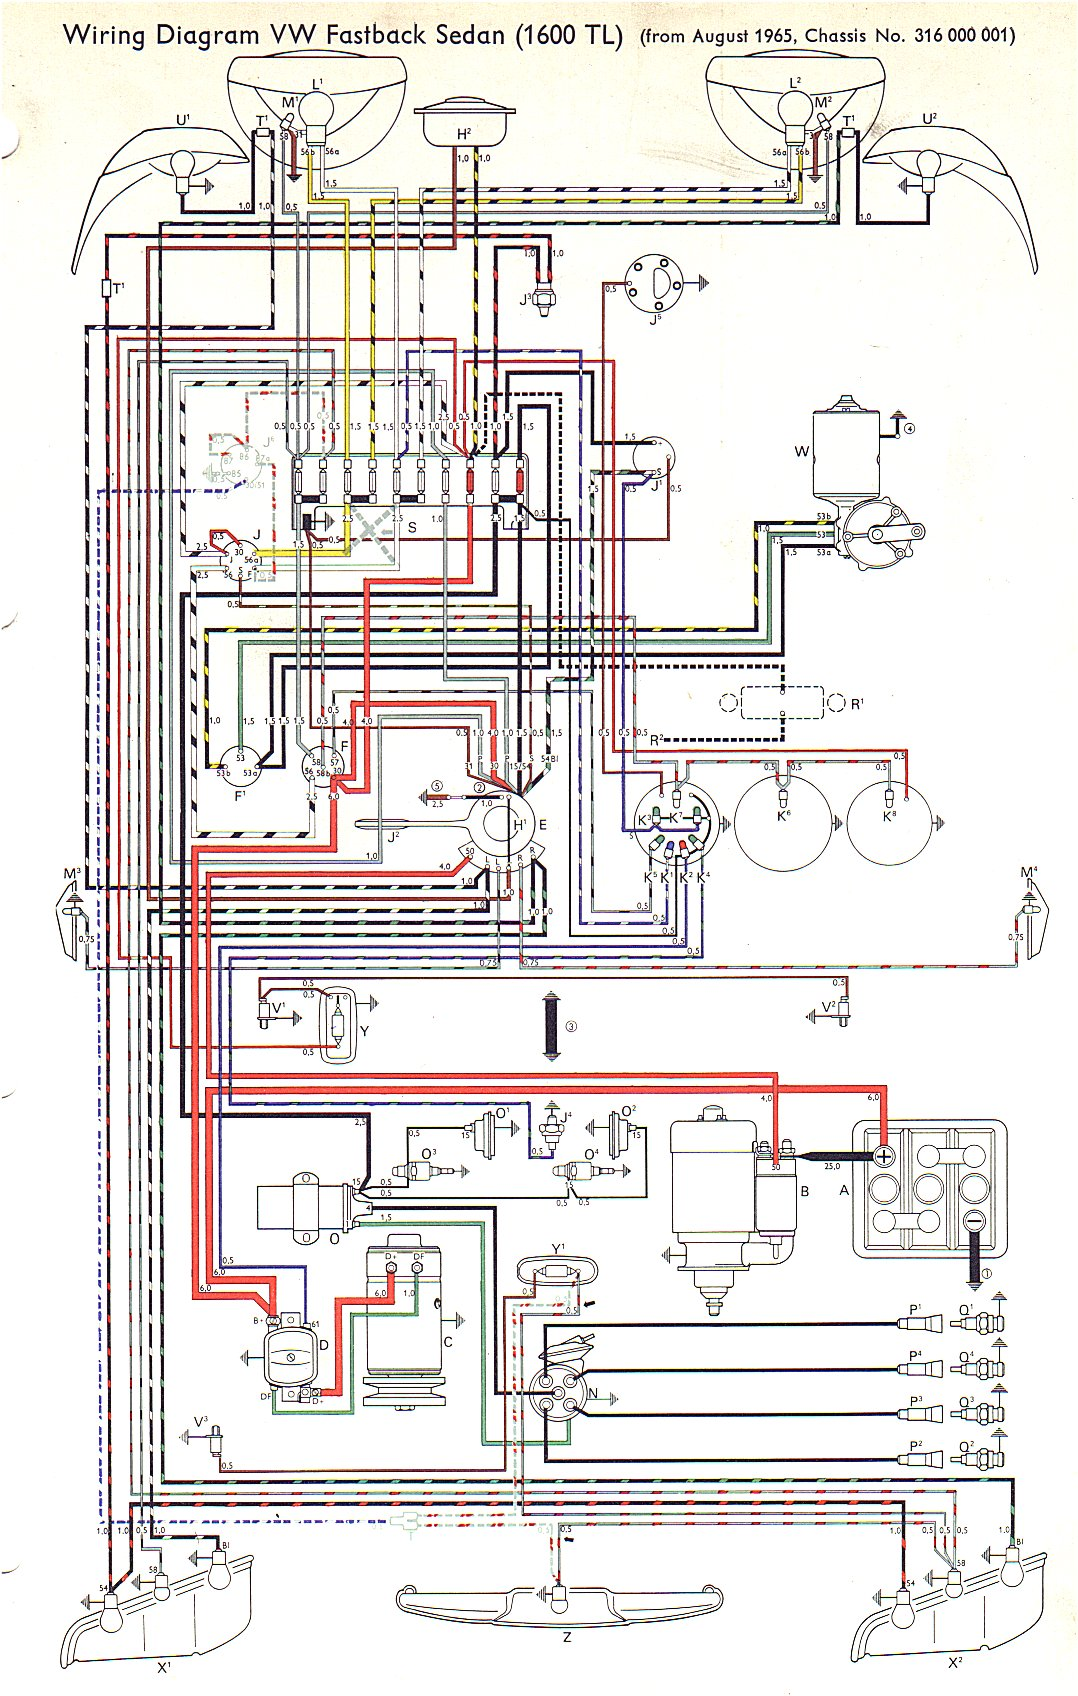 66 Vw Wiring Diagram 1300 Opinions About 1987 Volkswagen Golf Headlight Type 3 Diagrams 1968